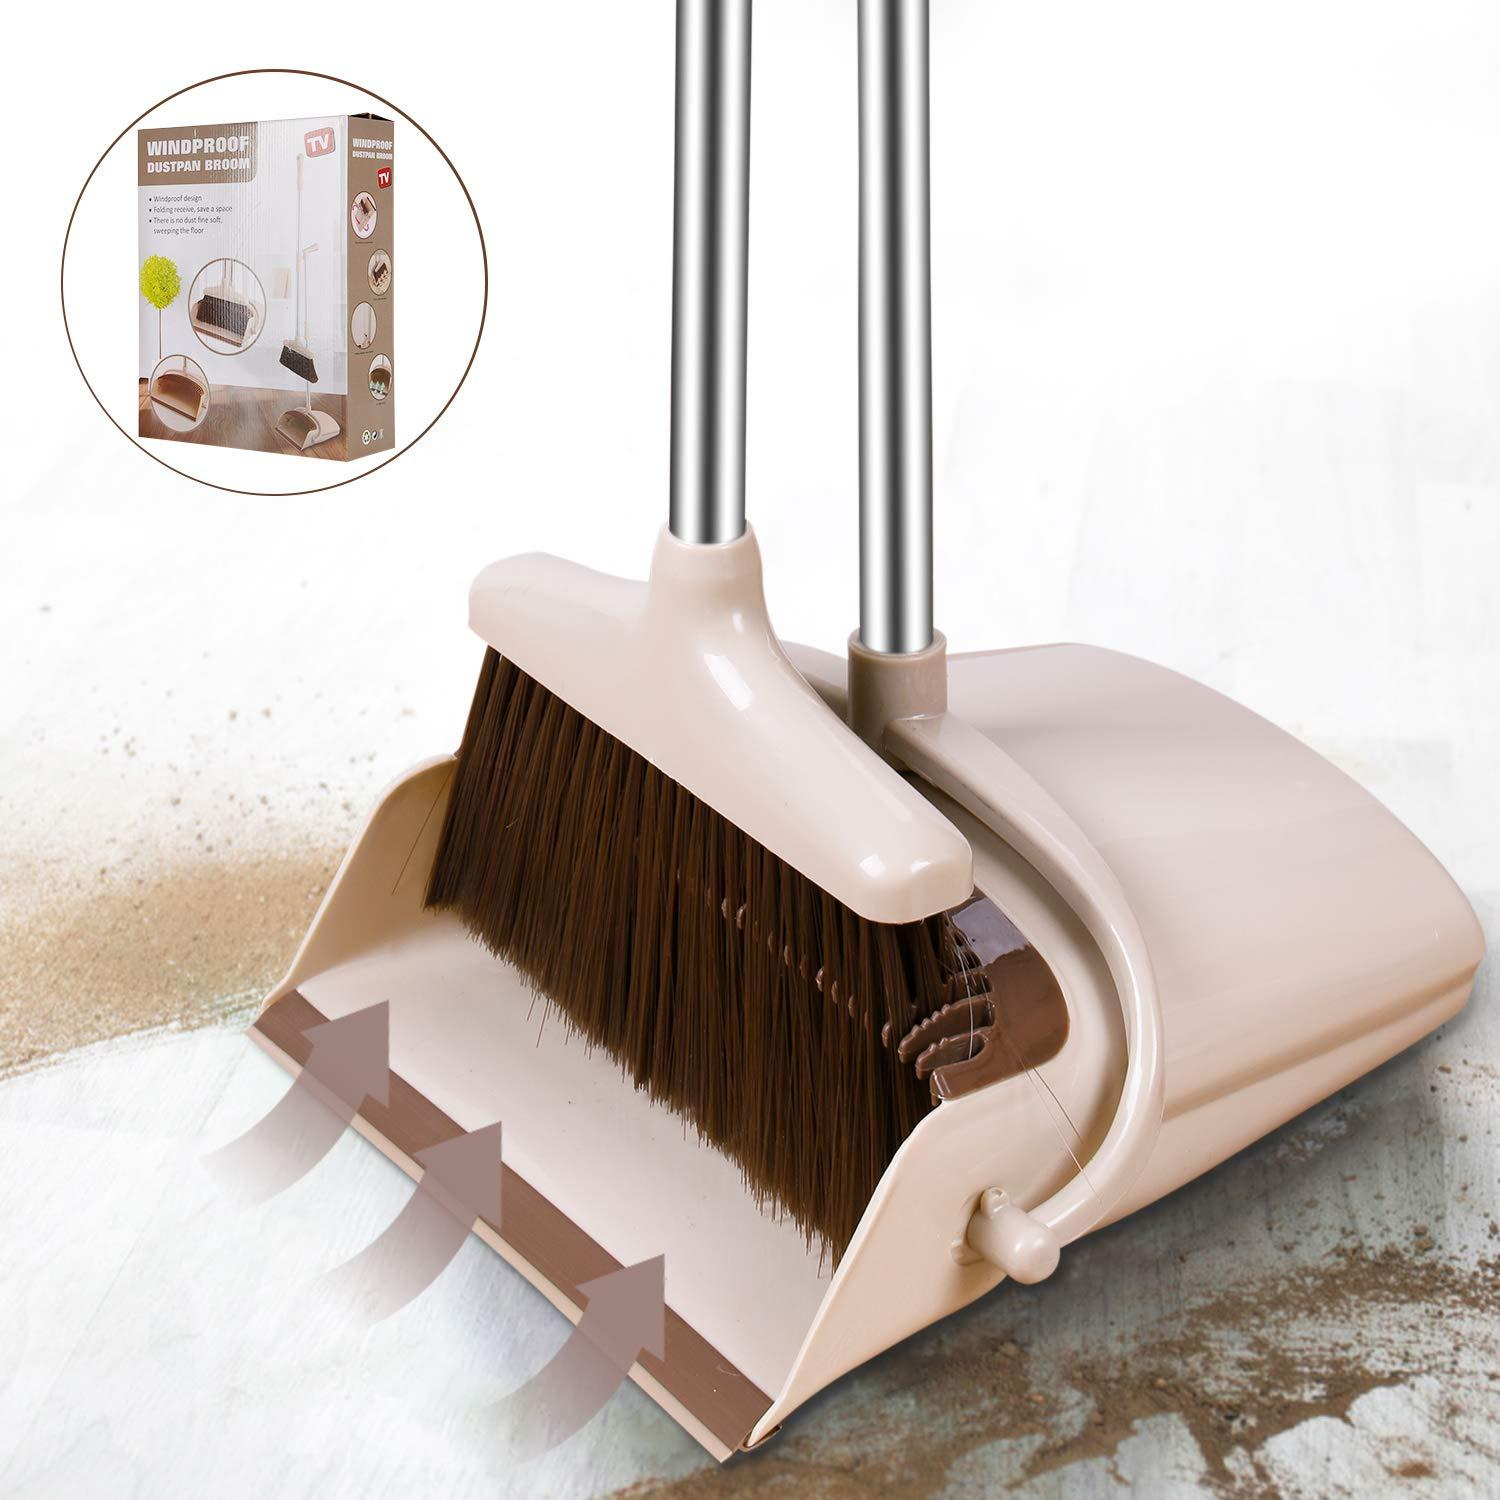 Windproof Broom and Dustpan Set Upright with Long Handle